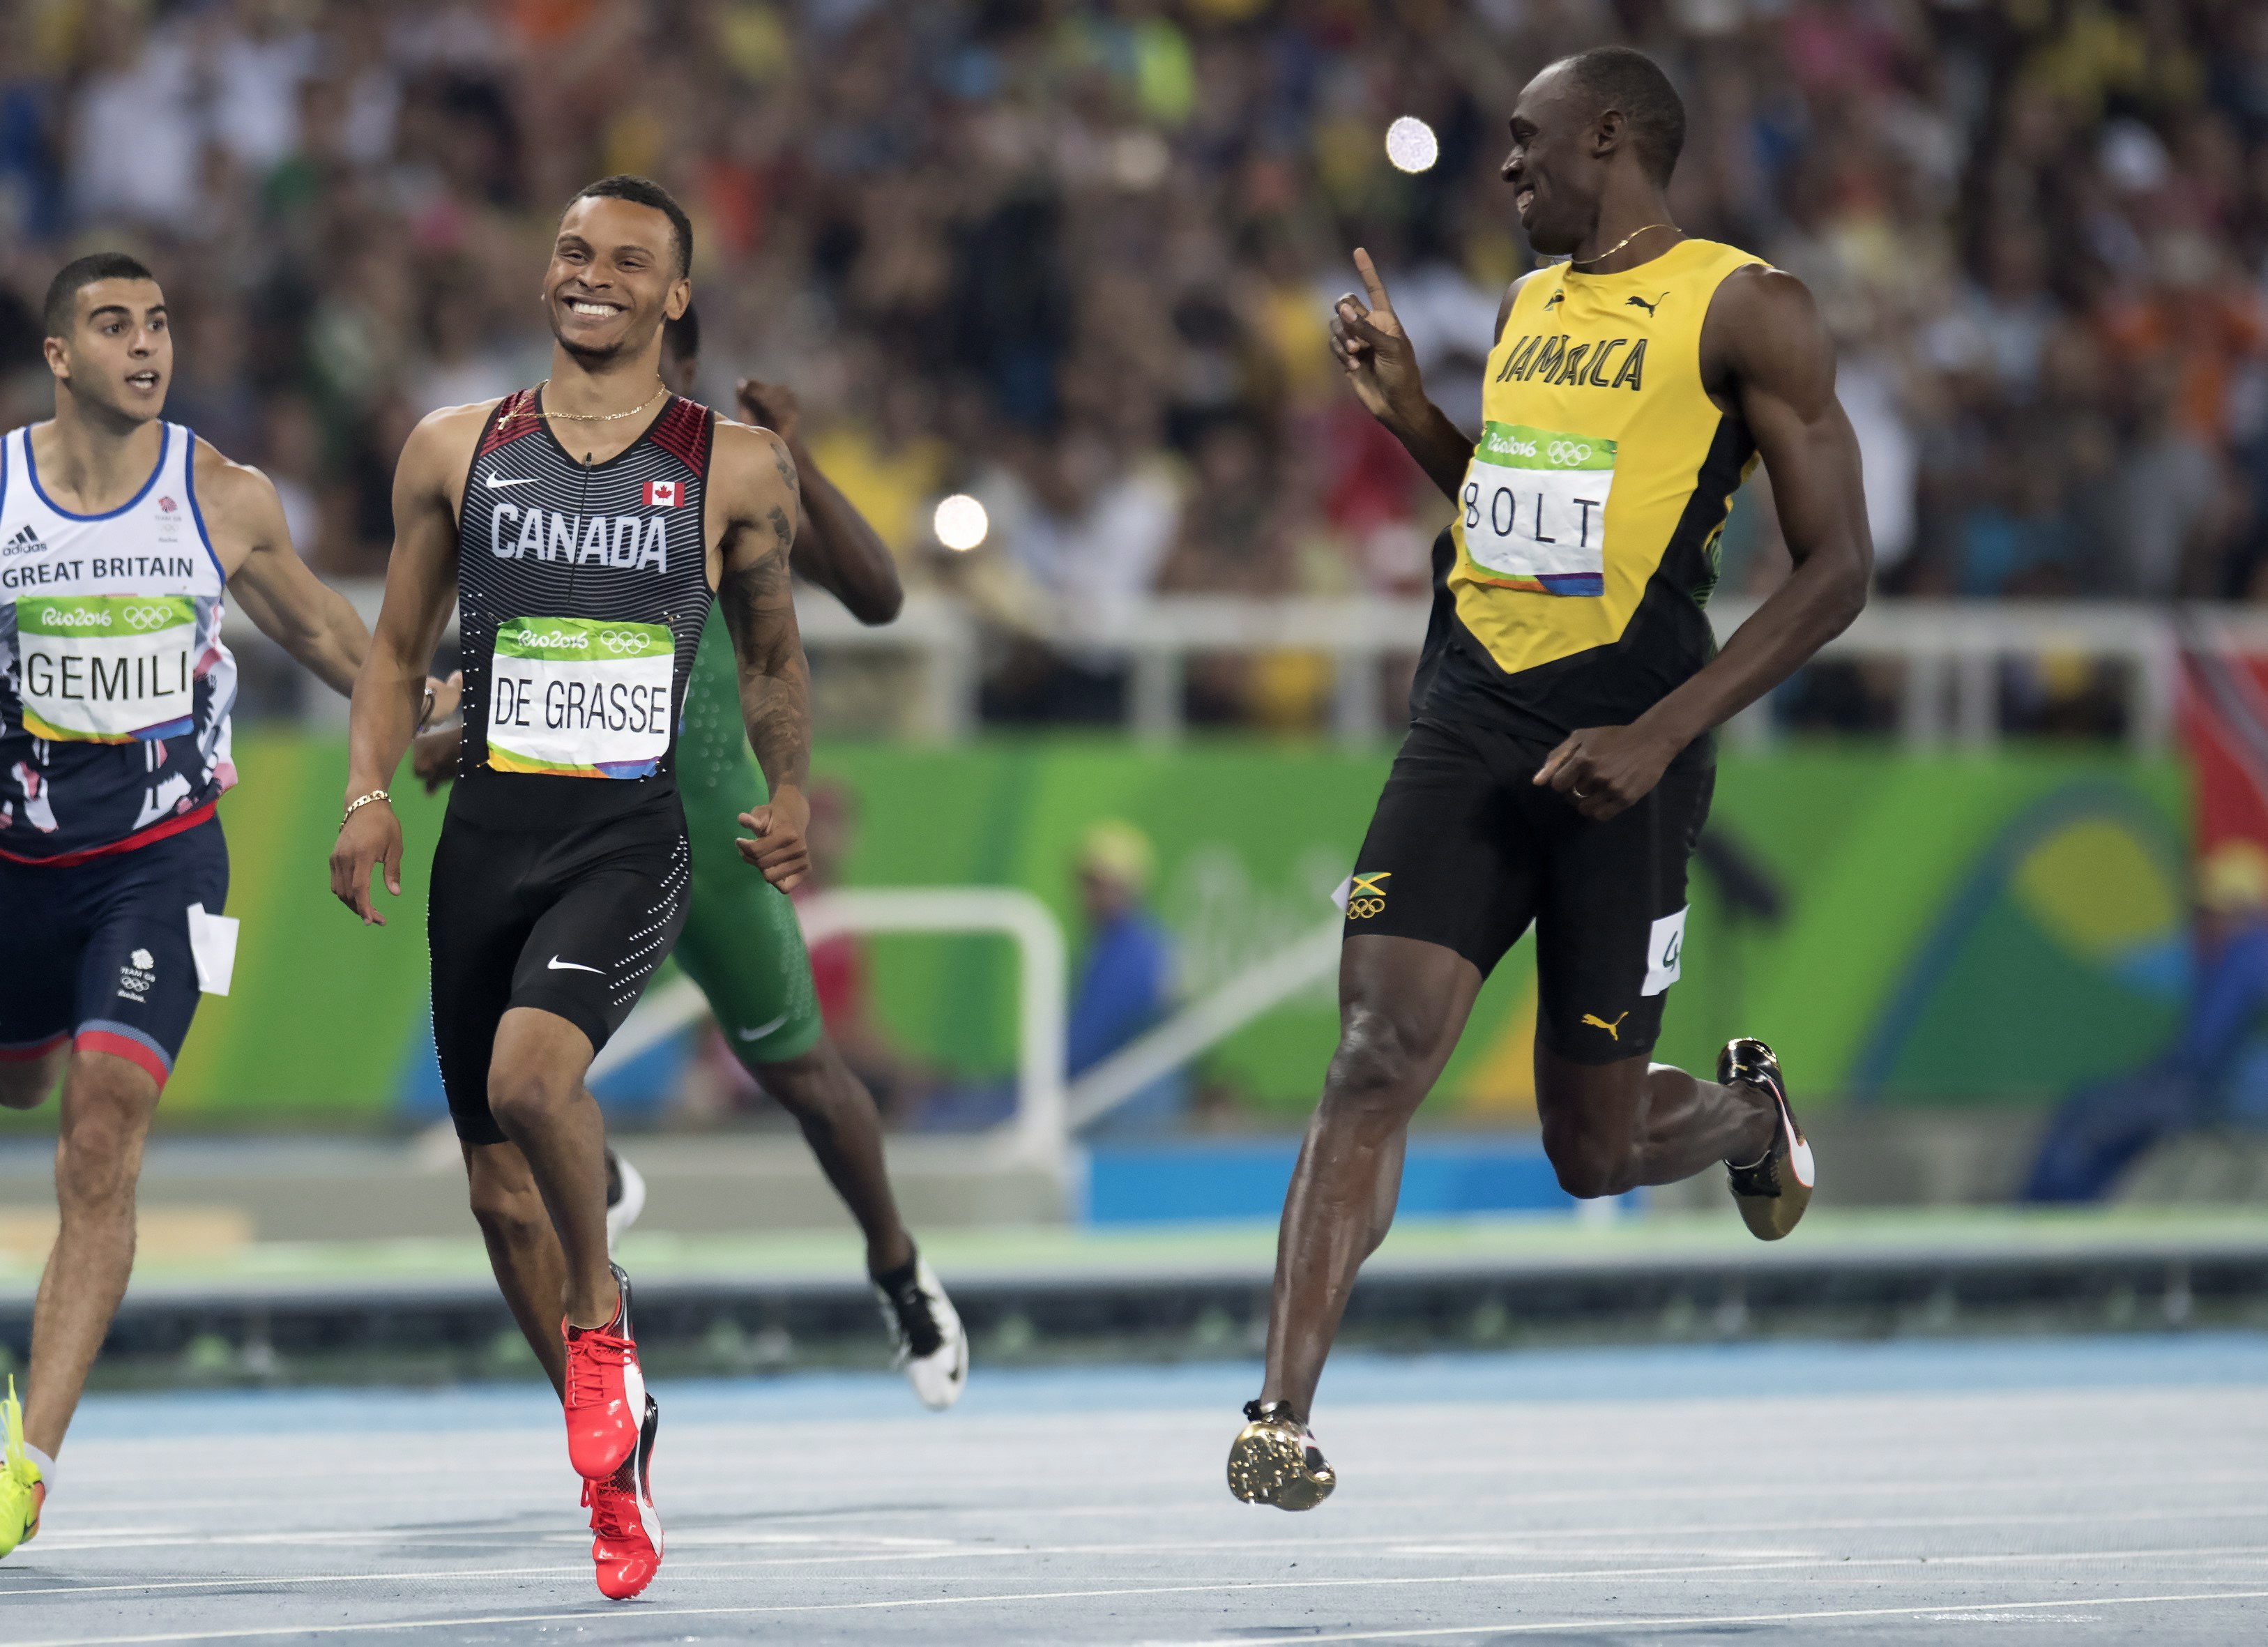 Bolt and De Grasse smiling as they cross the finish line